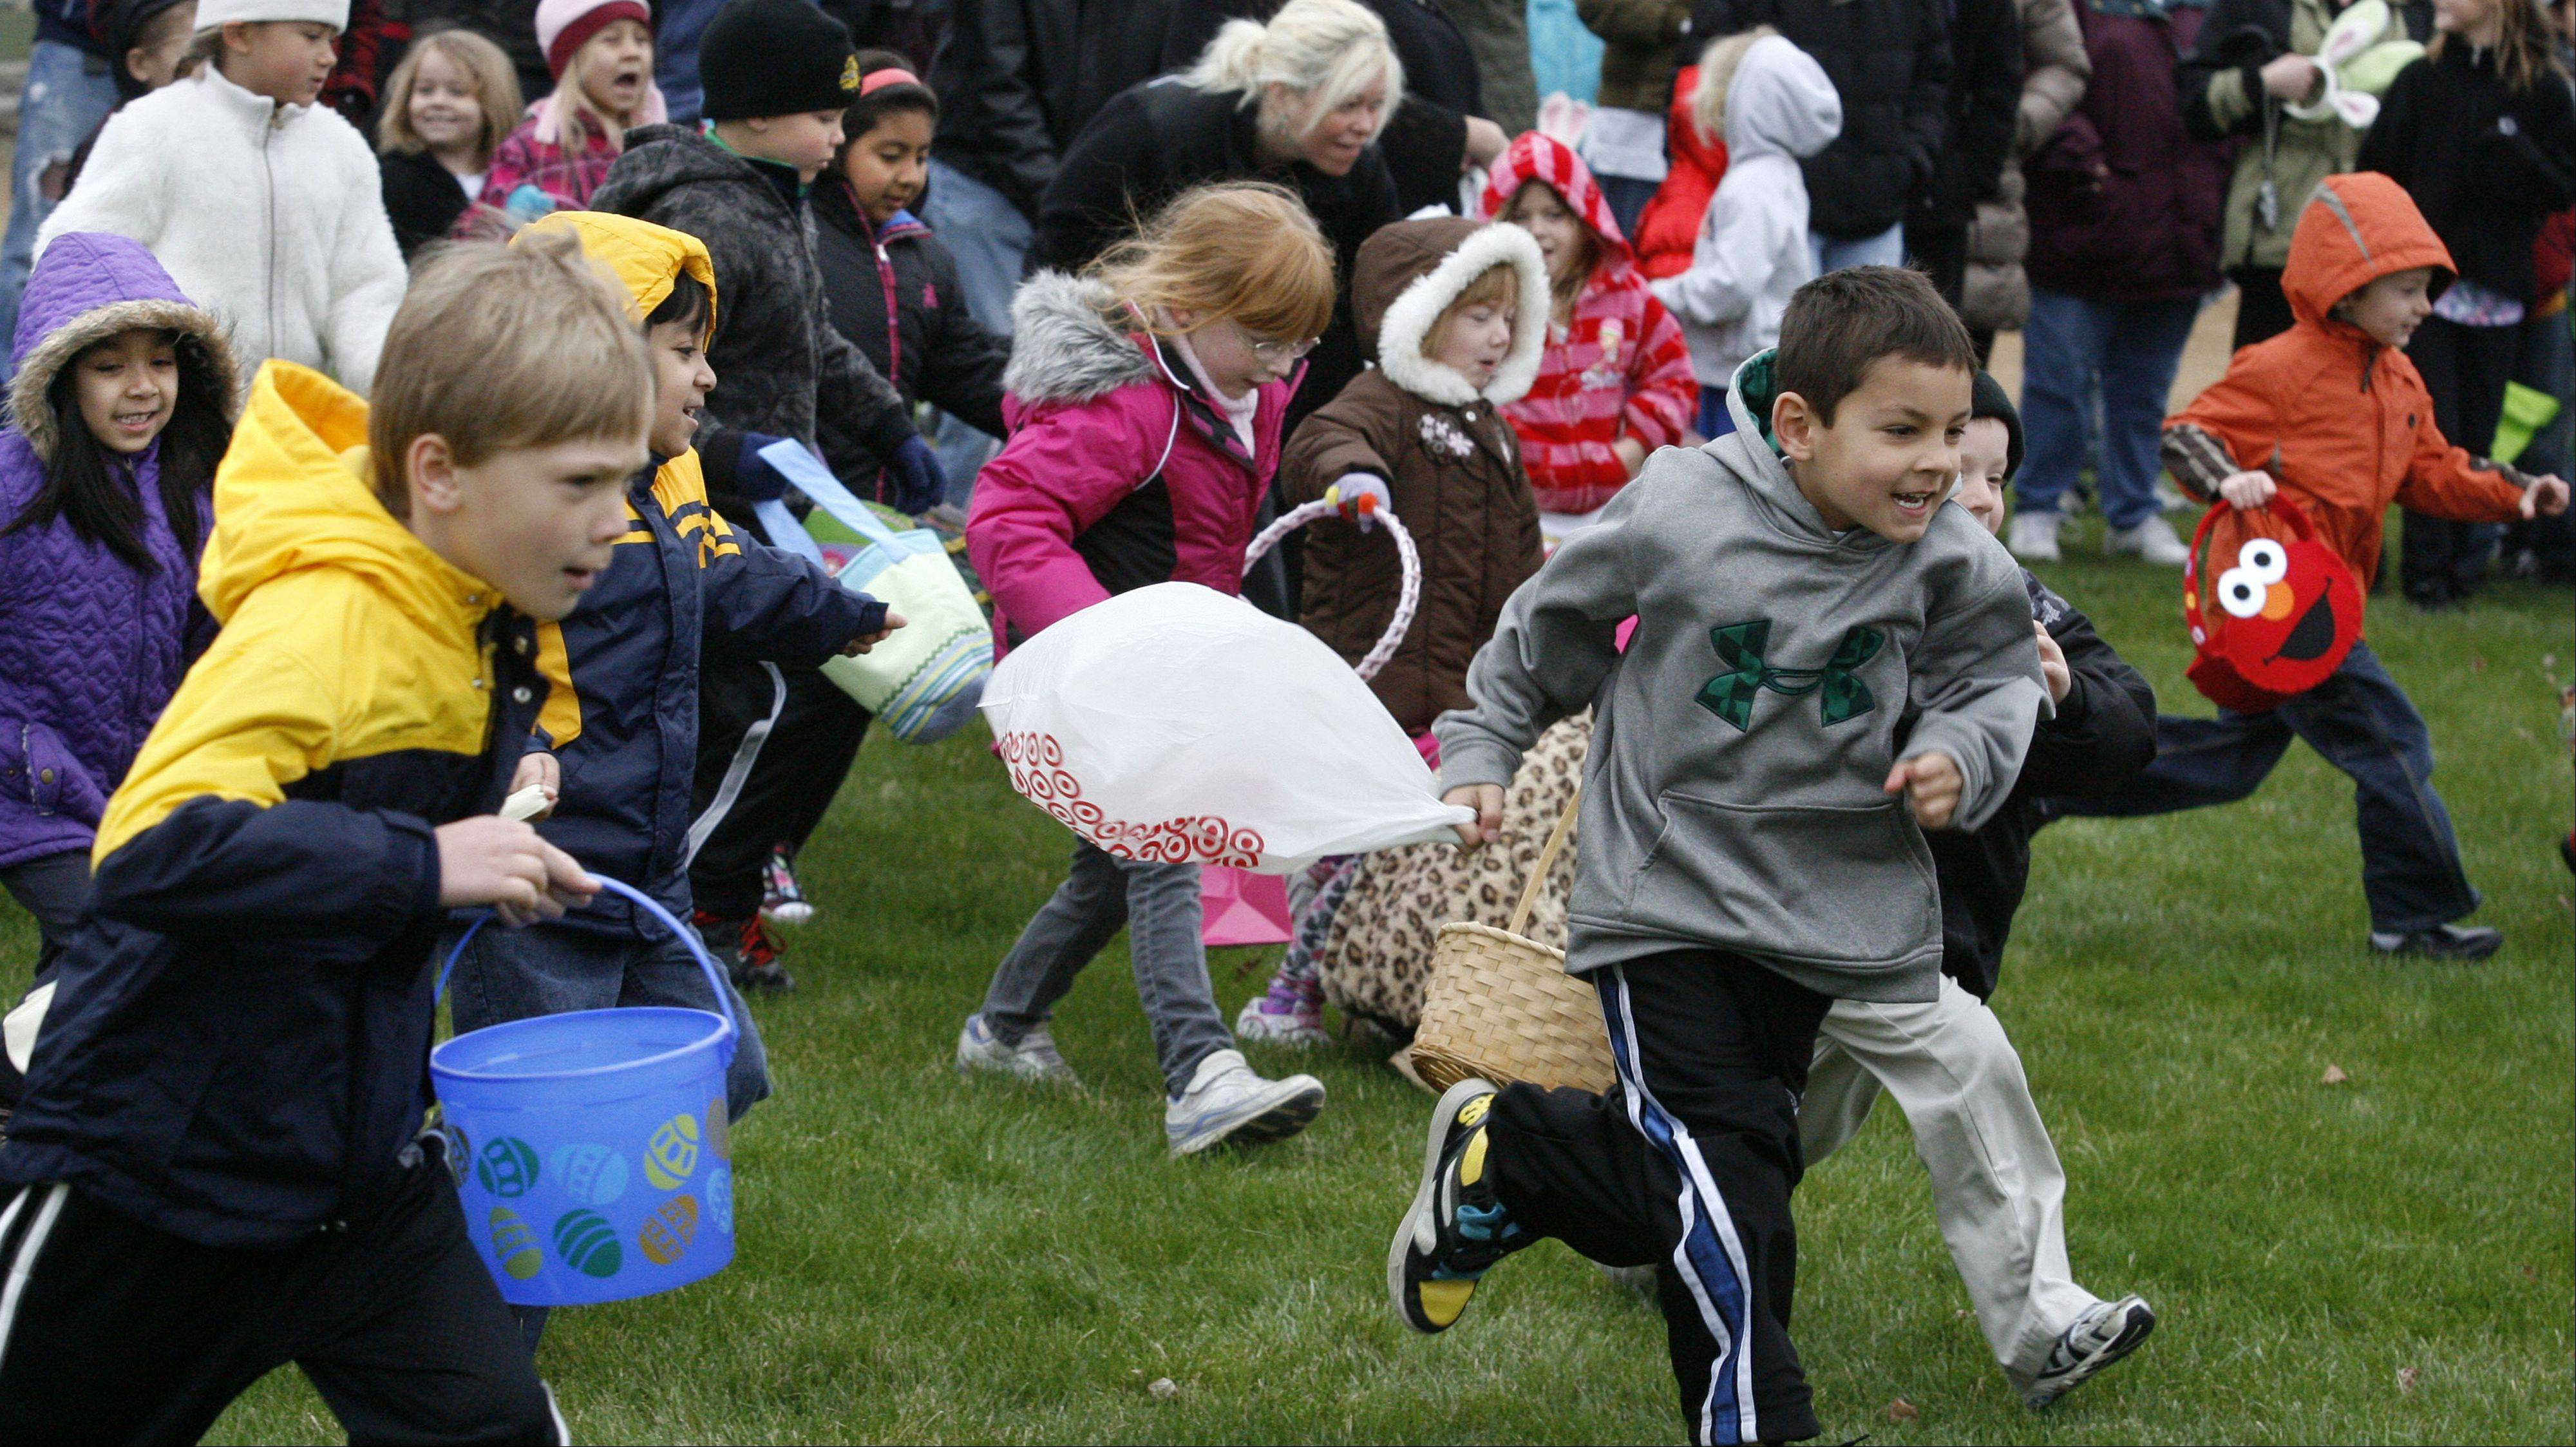 About 200 children races for candy and filled plastic eggs in three age groups at Wauconda Park District's annual Easter egg hunt at Cook Park on Saturday, March 31st.